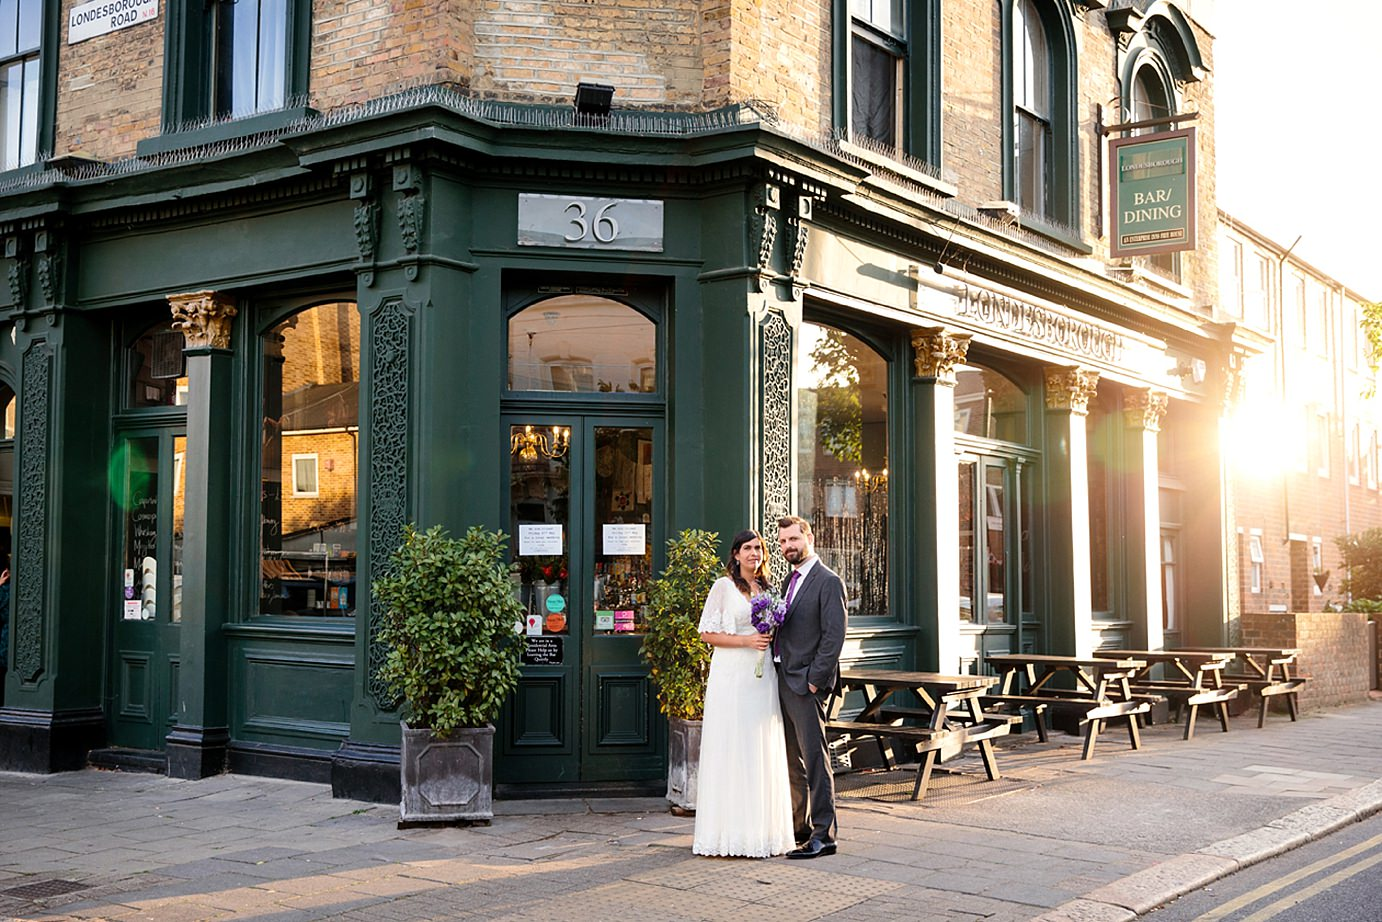 Londesborough pub wedding photography bride and groom outside pub